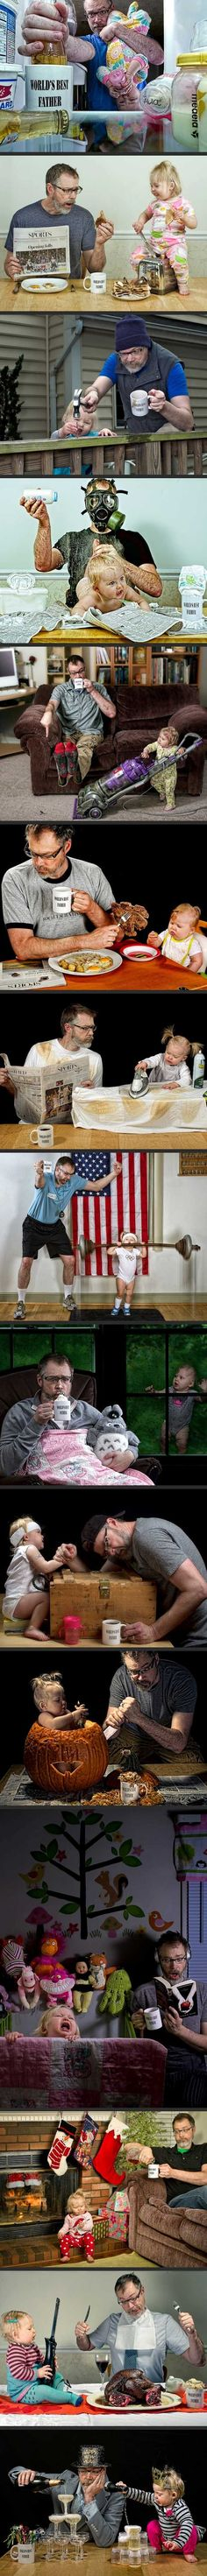 World's Best Dad stages hilarious photos with his toddler.